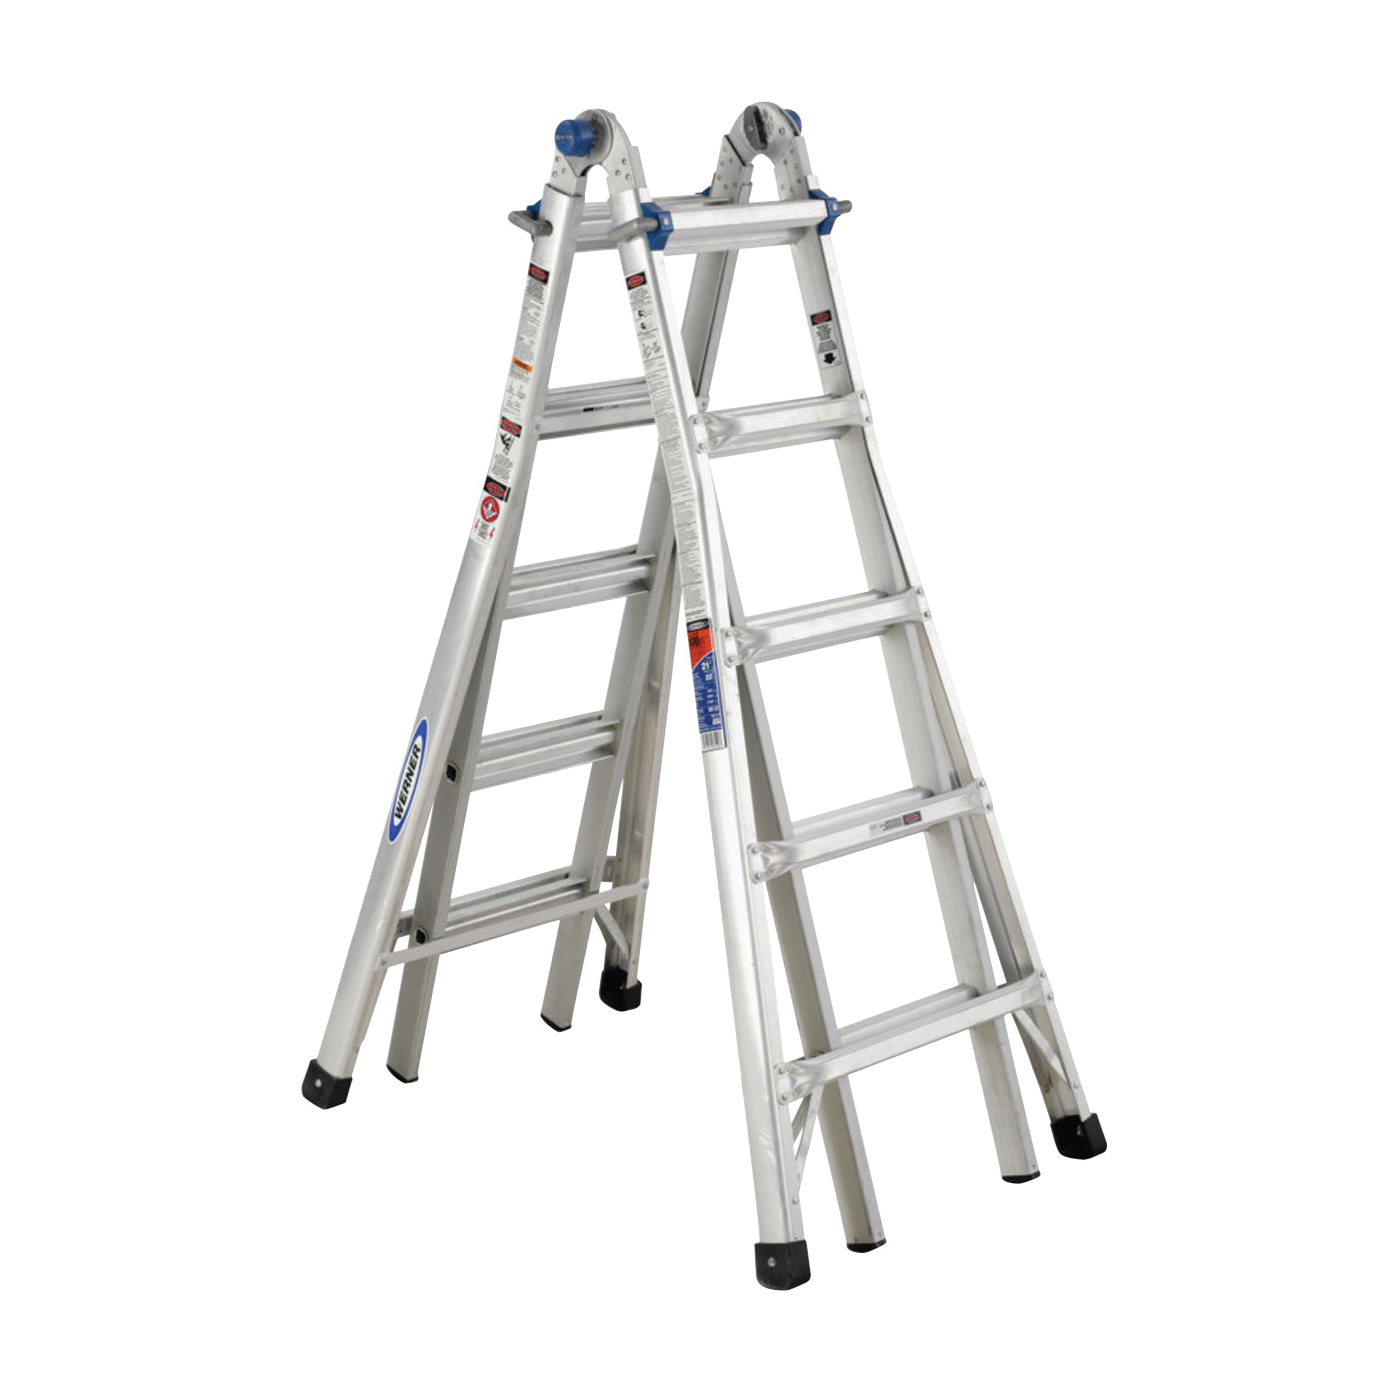 Picture of WERNER MT-22 Telescoping Multi-Ladder, 22 ft Max Reach H, 20-Step, 300 lb, Type IA Duty Rating, 1-1/4 in D Step